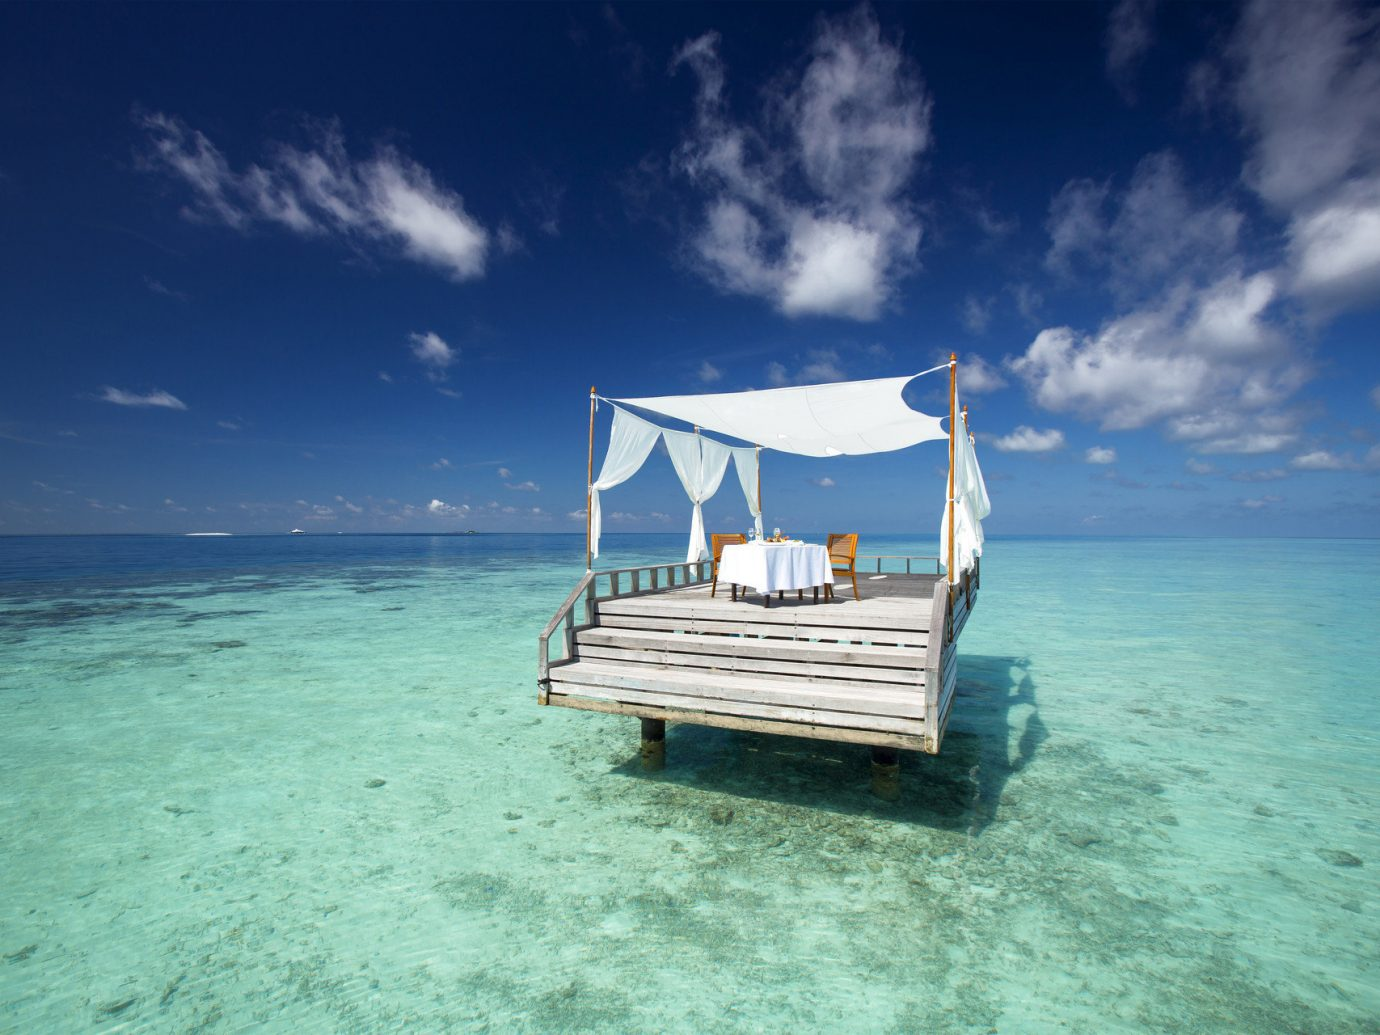 cabana calm clear water Dining Food + Drink isolation Luxury Ocean ocean view outdoor dining private private dining remote serene turquoise view sky water outdoor Sea blue caribbean vehicle horizon Beach cloud shore vacation Coast Island bay Lagoon wave ship cruise ship day